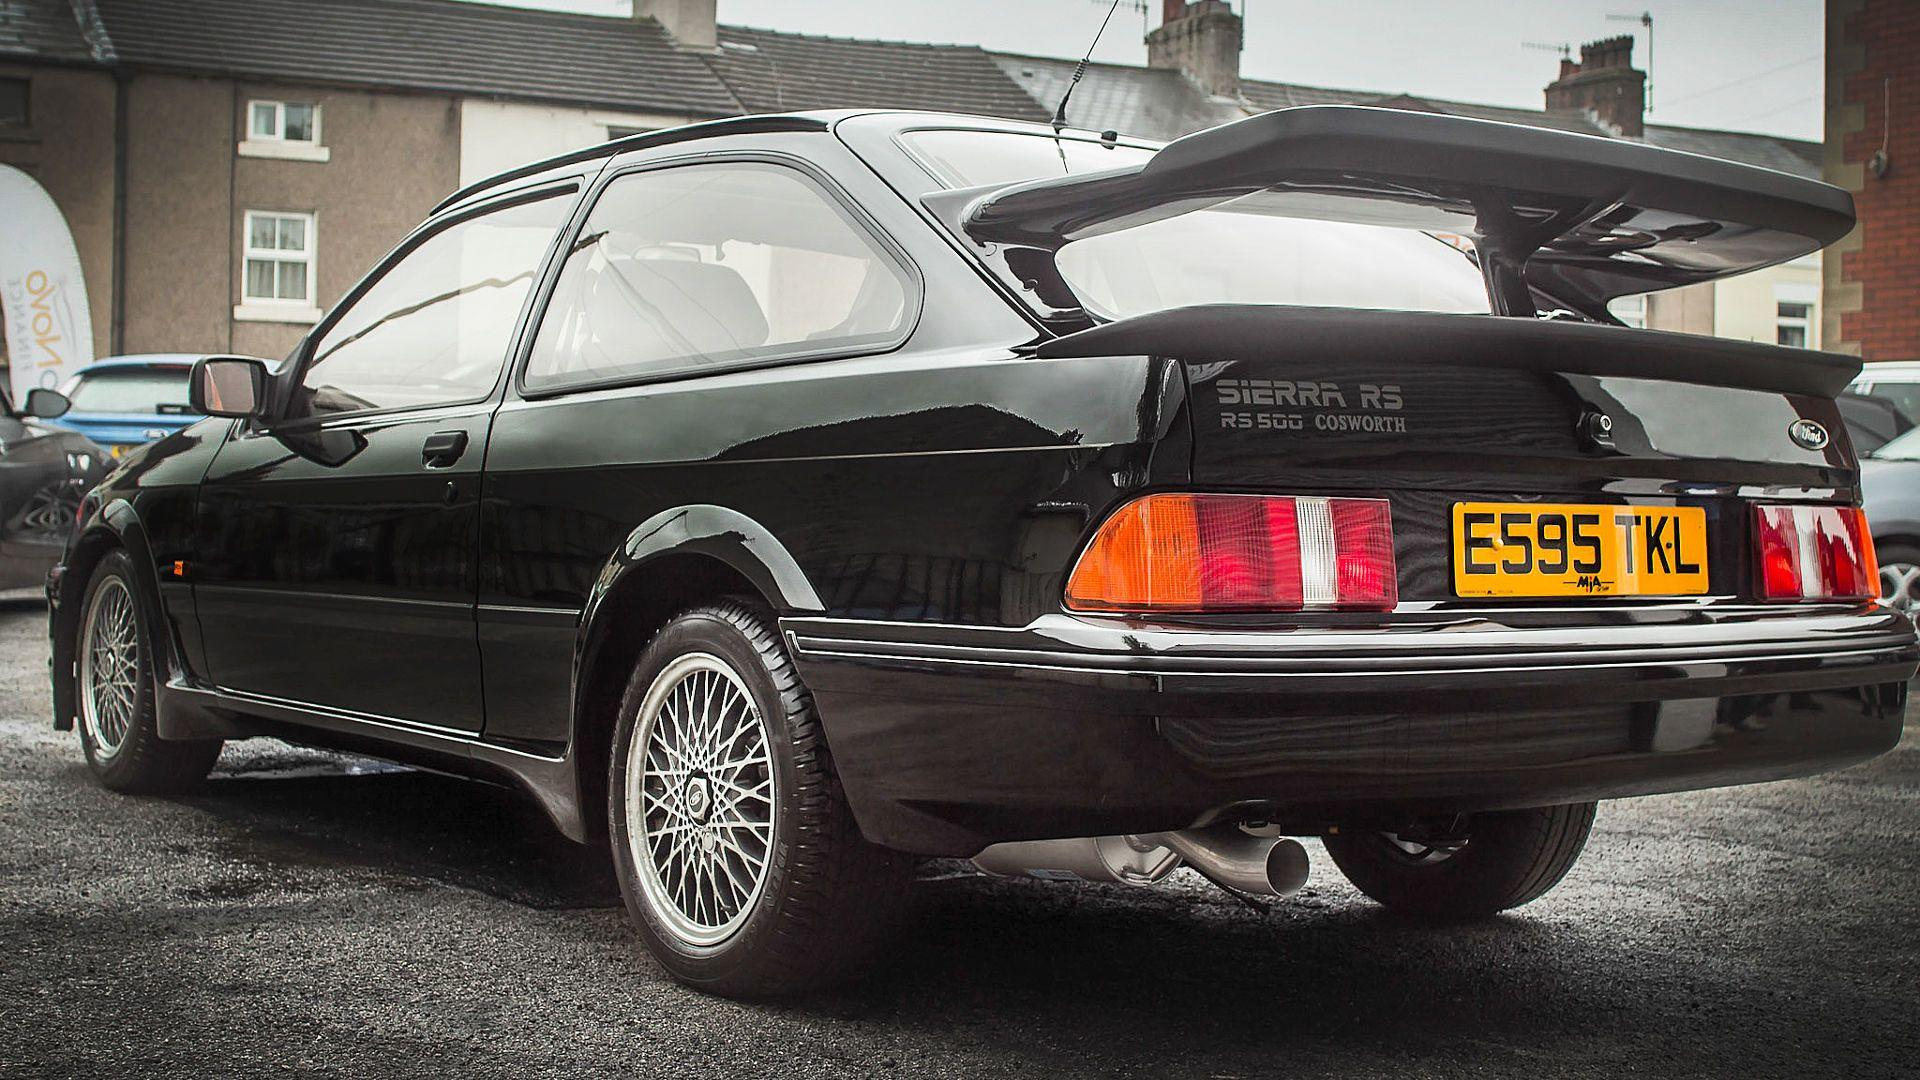 Low mileage ford sierra cosworth rs500 sold for 150000